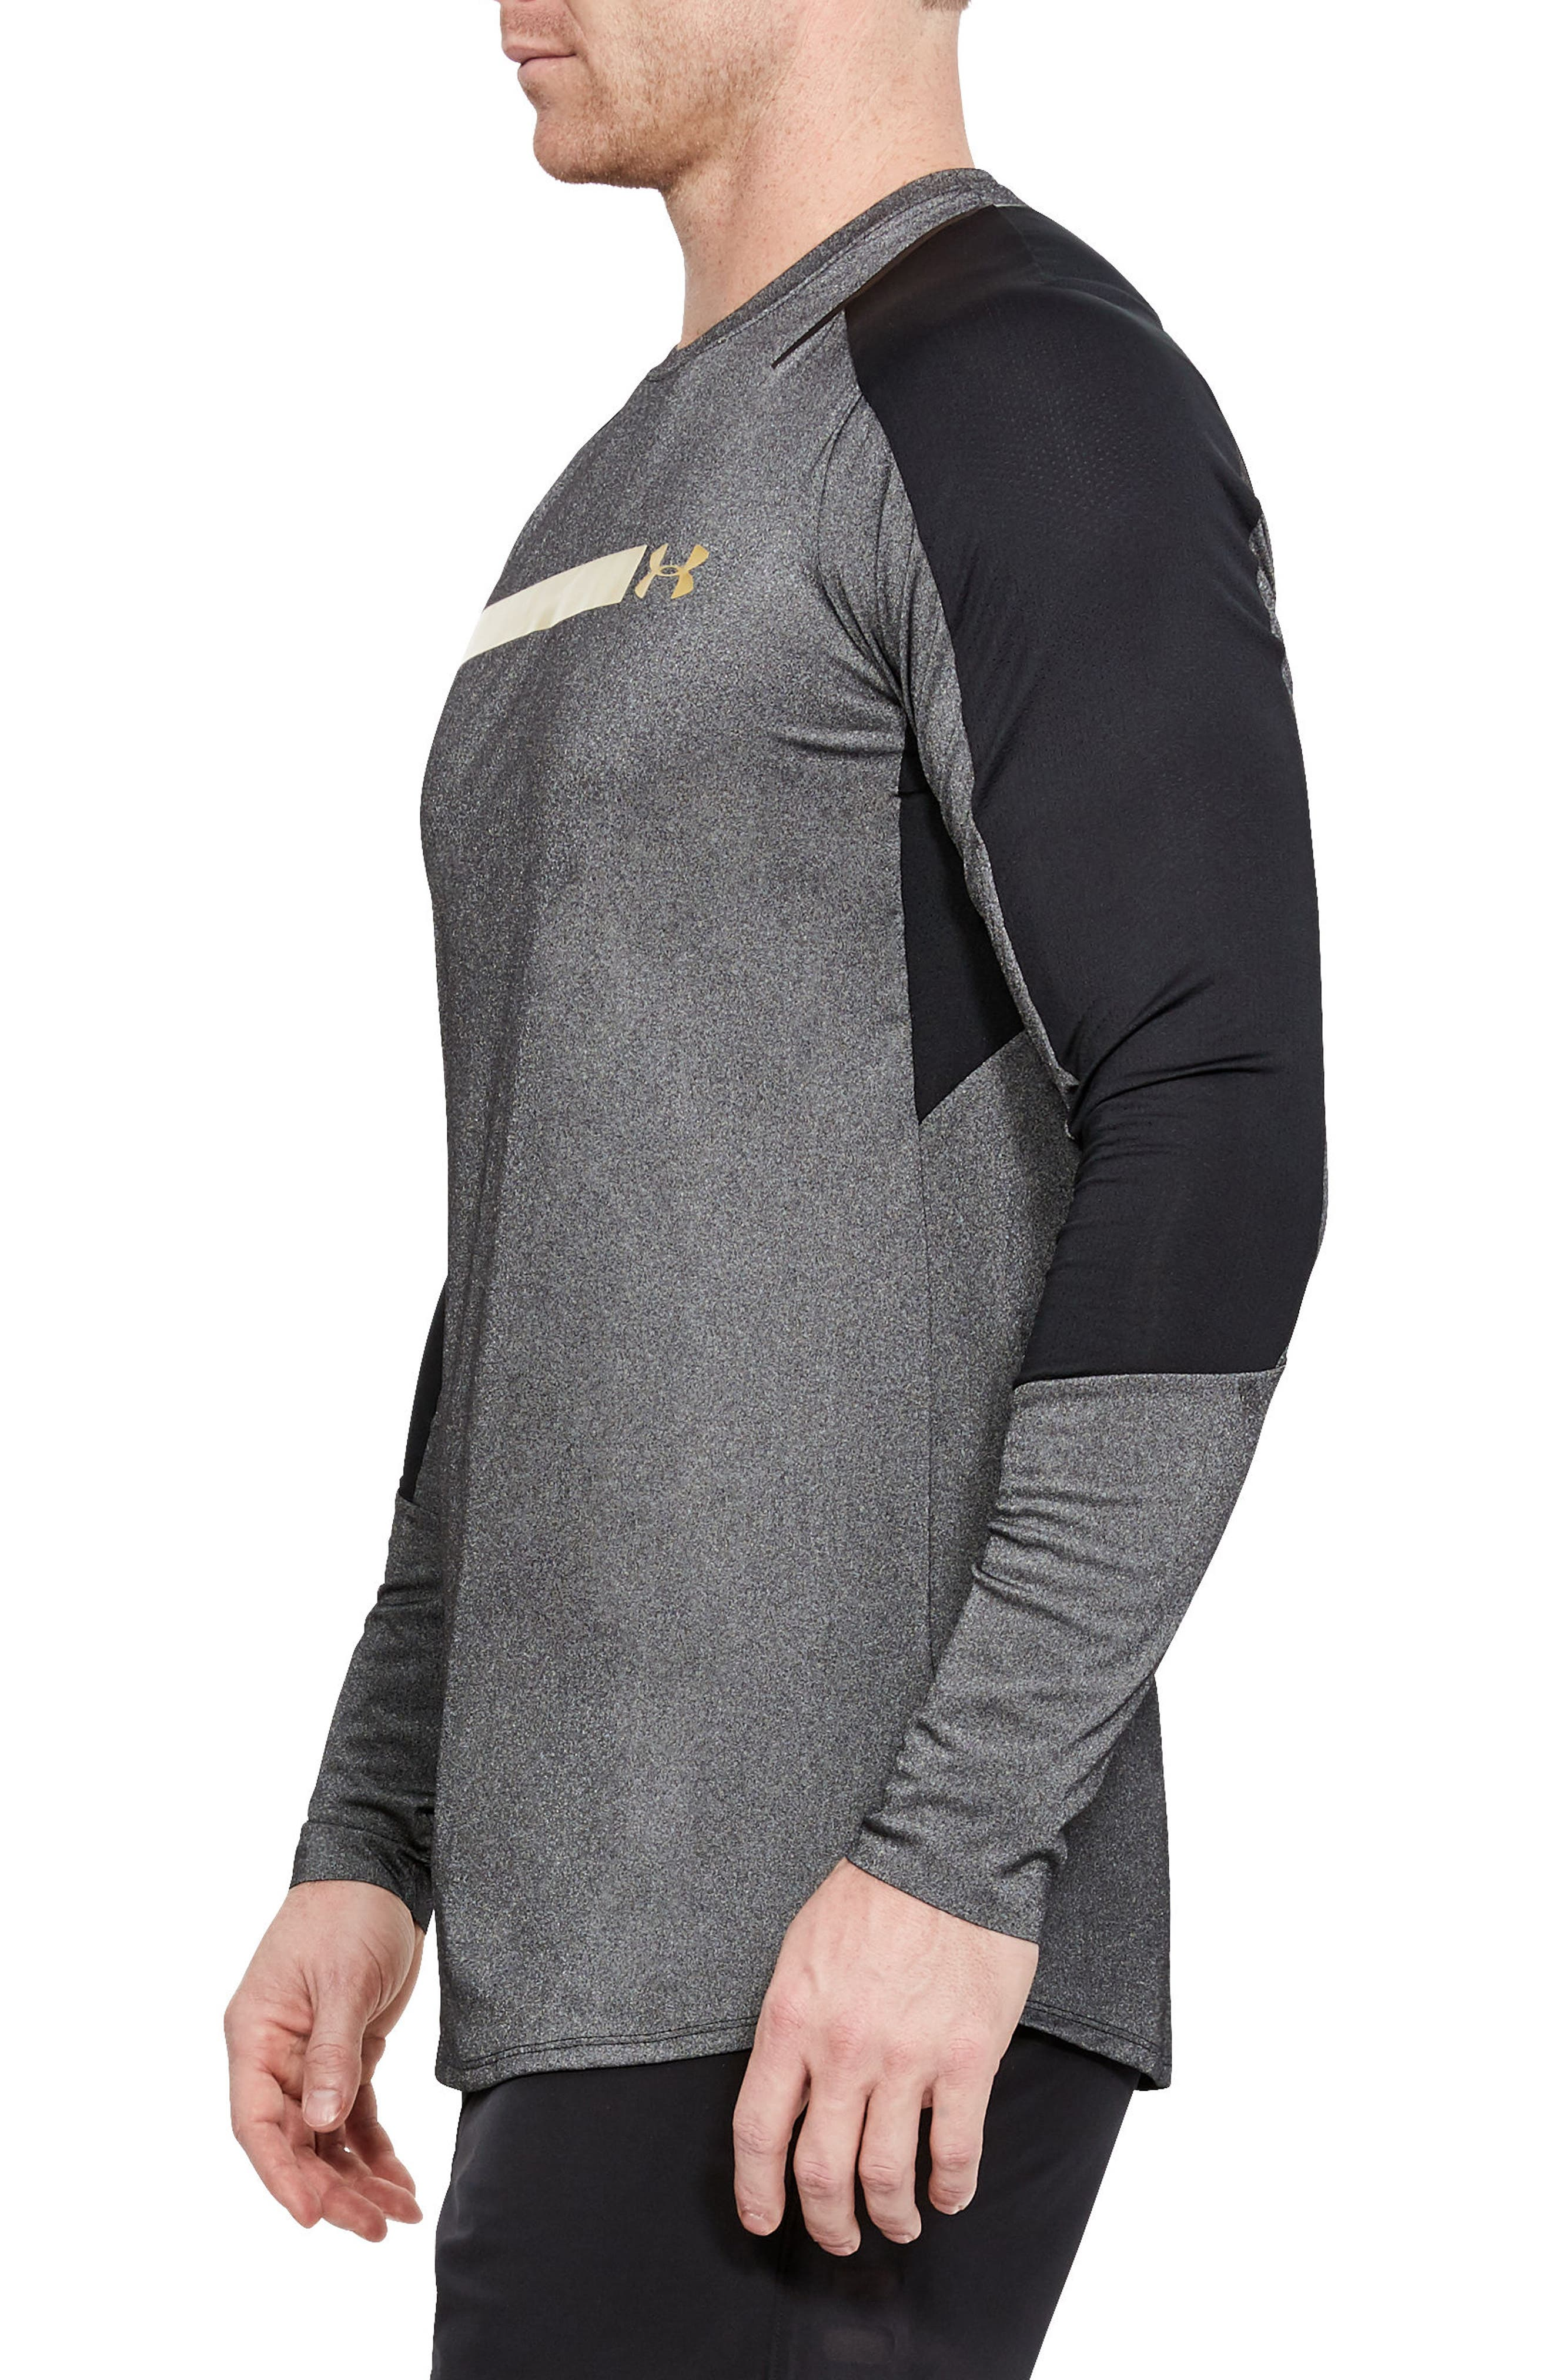 Perpetual Fitted Long-Sleeve Shirt,                             Alternate thumbnail 3, color,                             Black/ Metallic Victory Gold